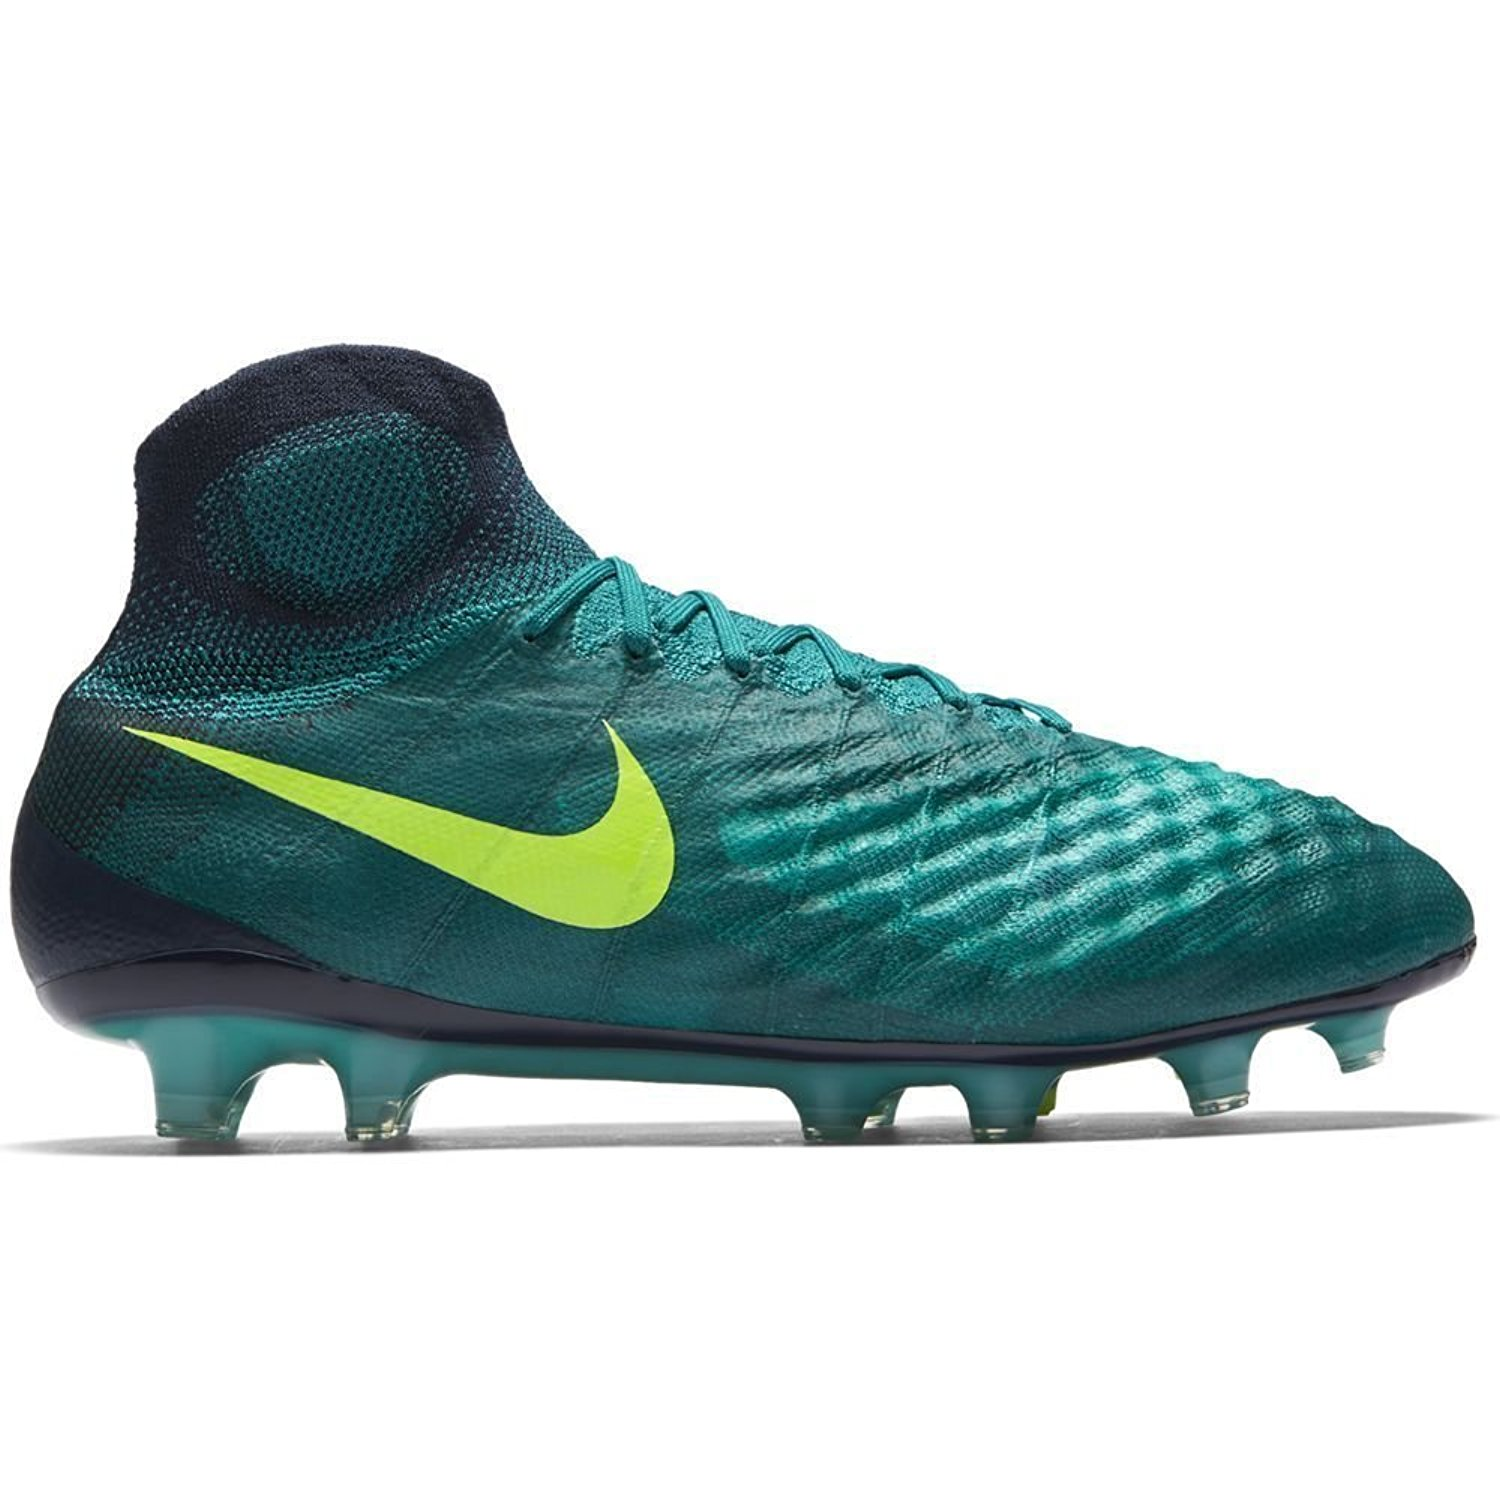 Get Quotations · NIKE Magista Obra II FG